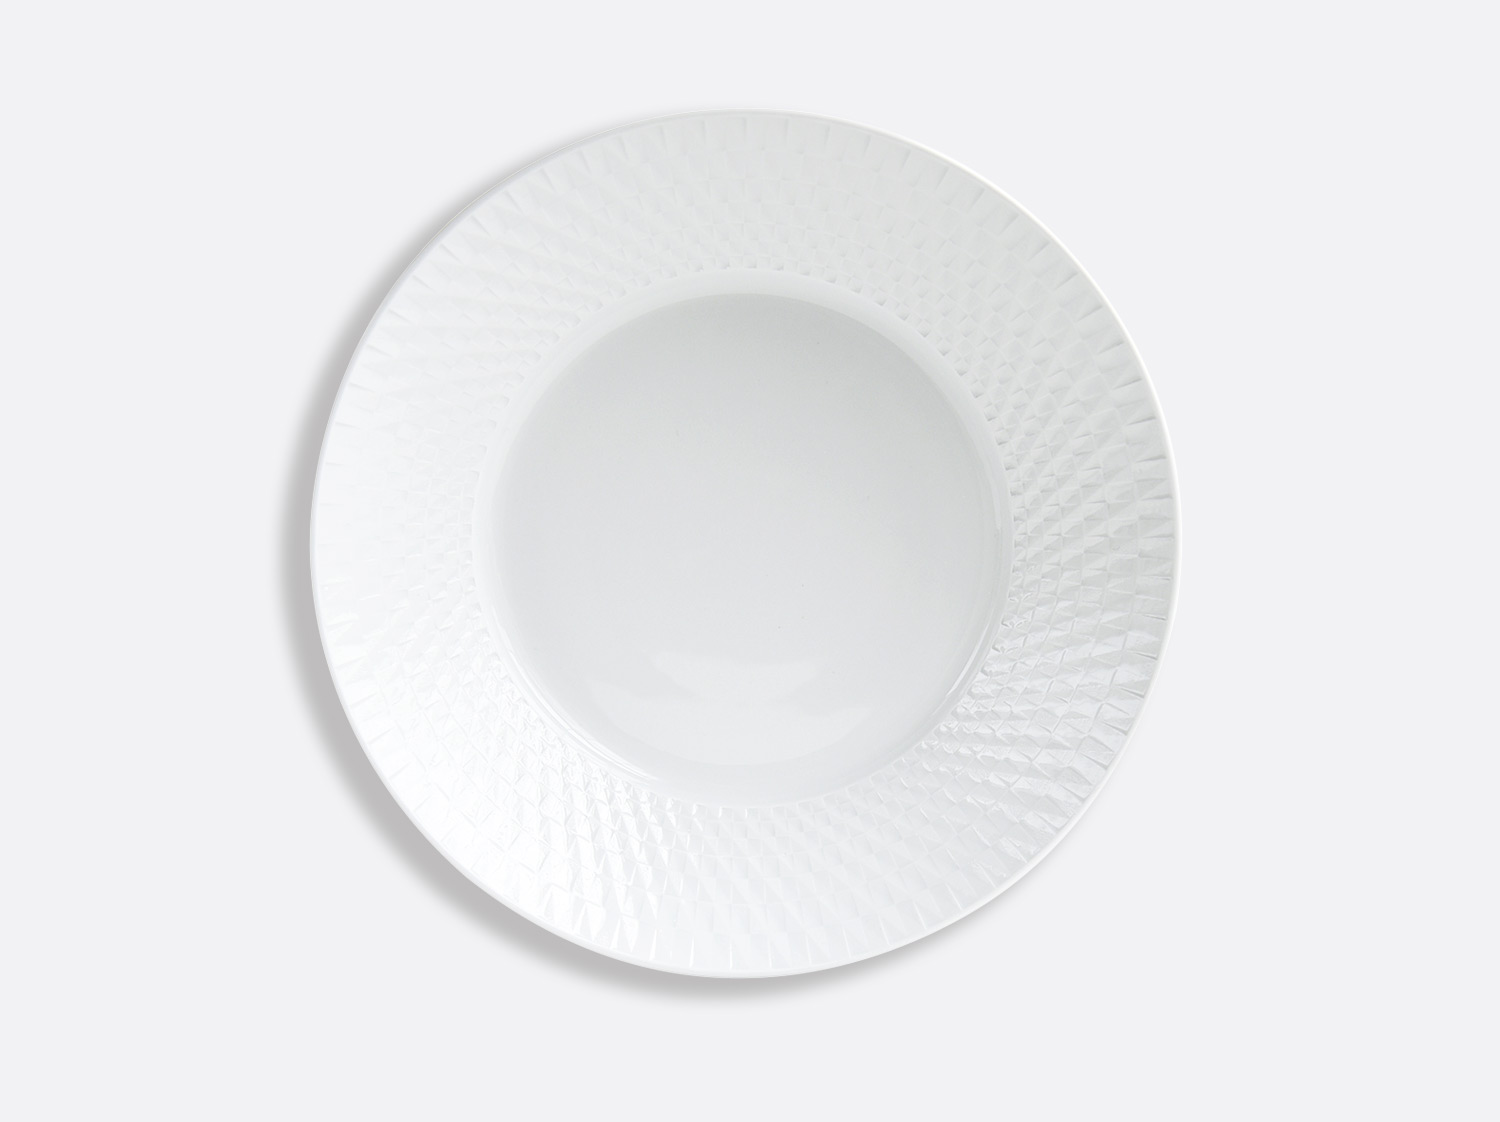 Compotier creux 24,5 cm 80 cl en porcelaine de la collection Twist Bernardaud